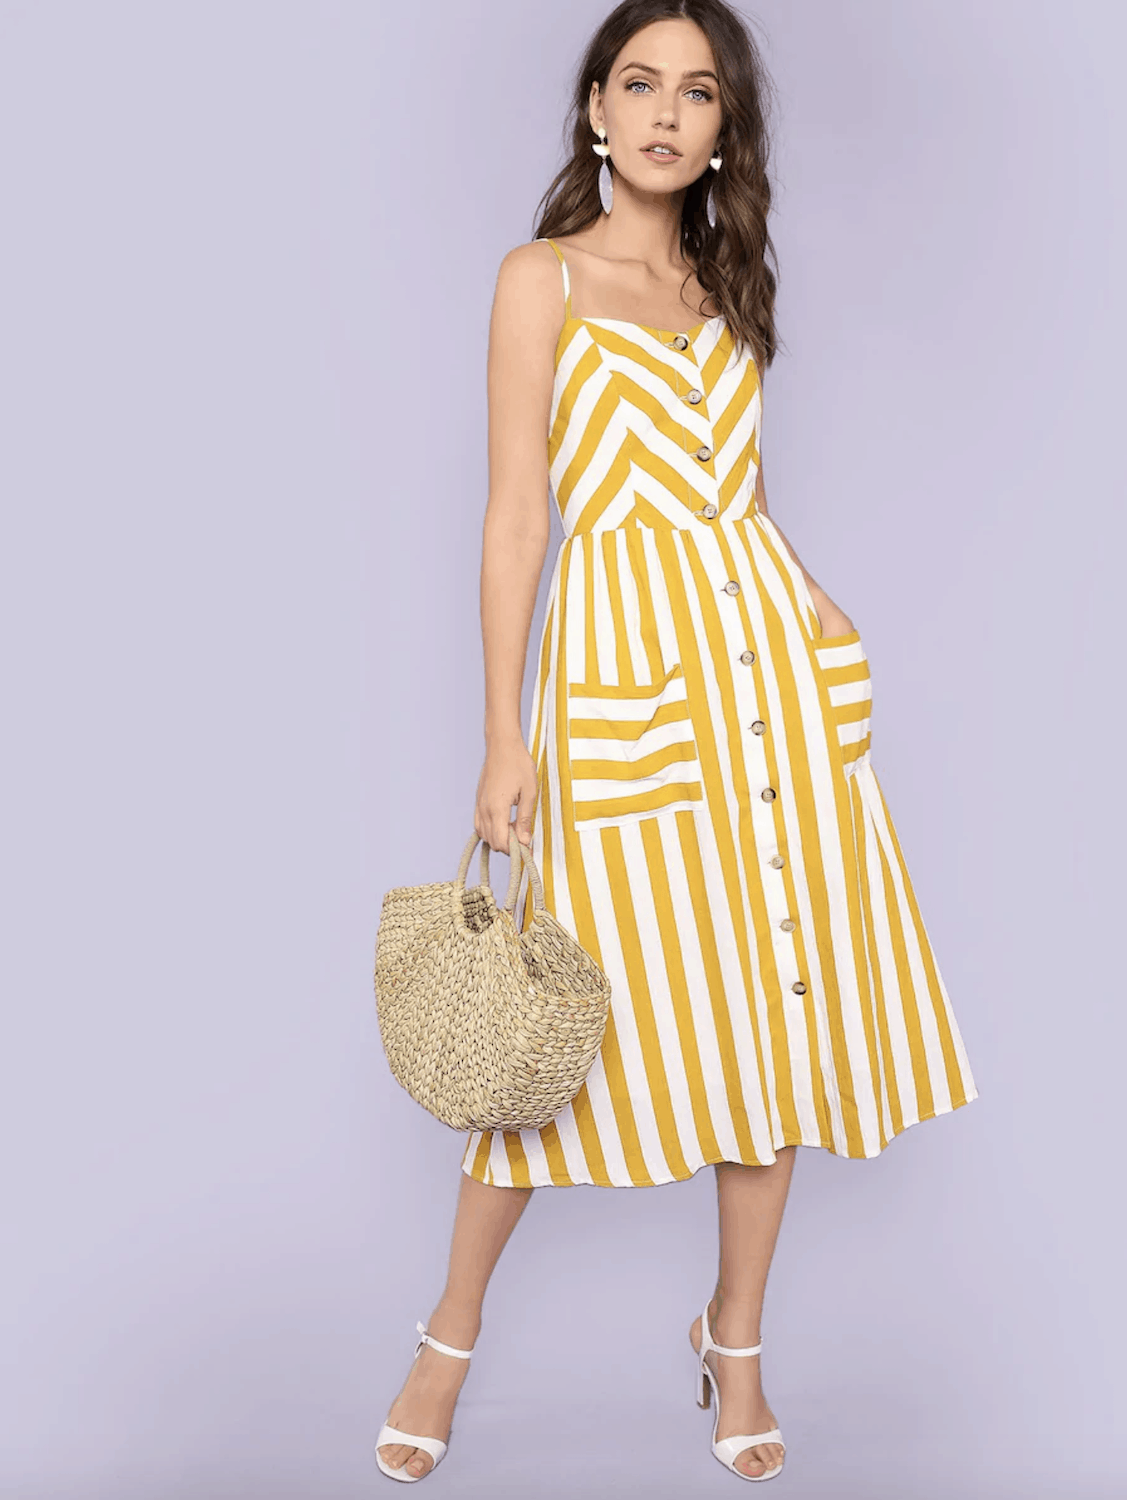 Amalfi Coast Outfits Positano Italy Dresses Button Through Shirred Back Pocket Striped Cami Dress